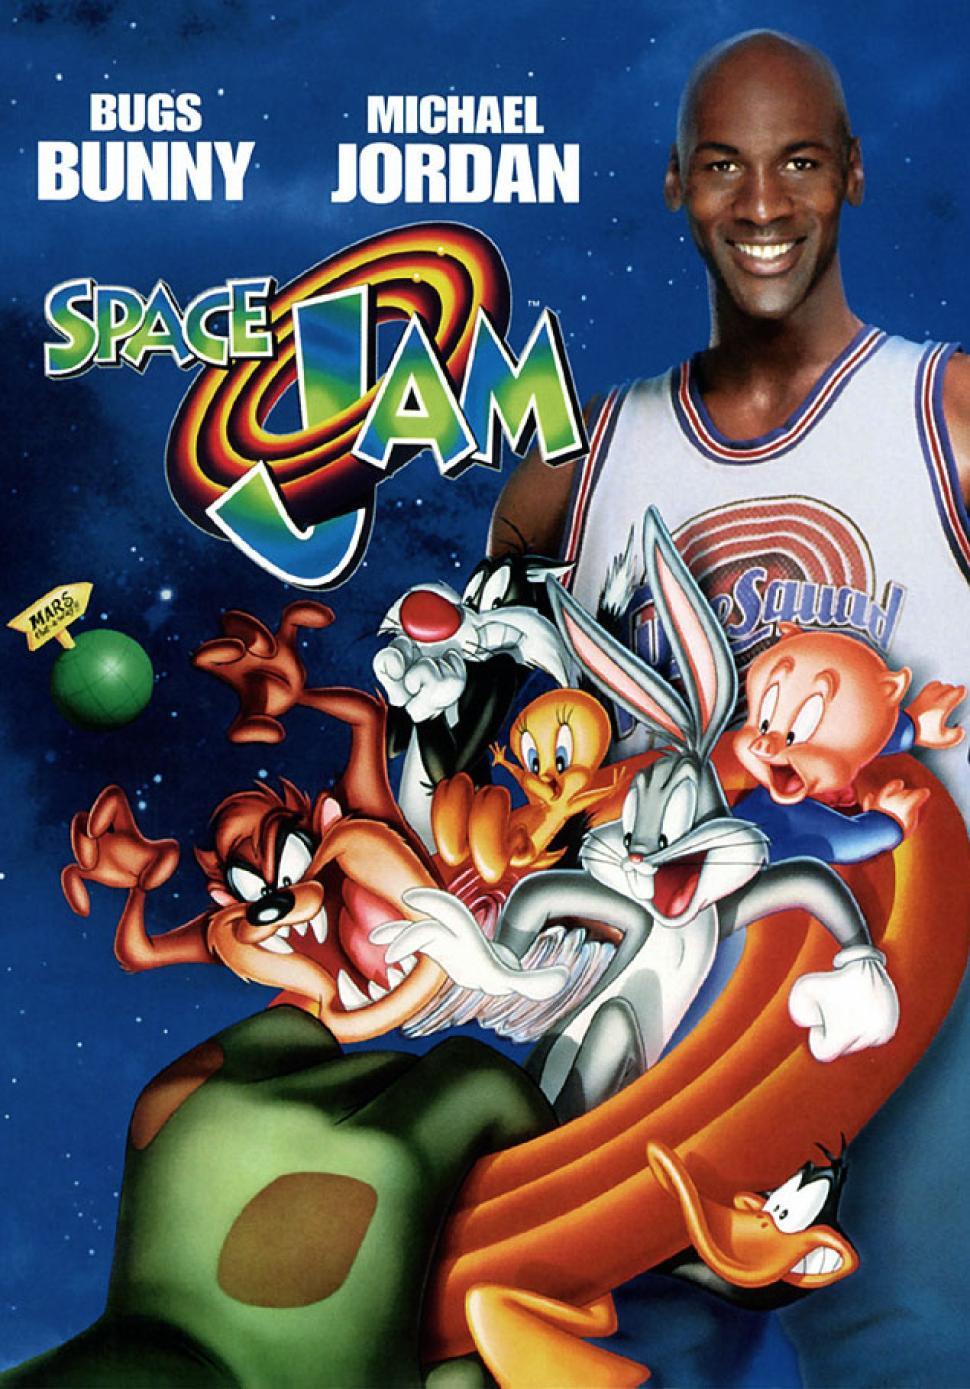 Space Jam review